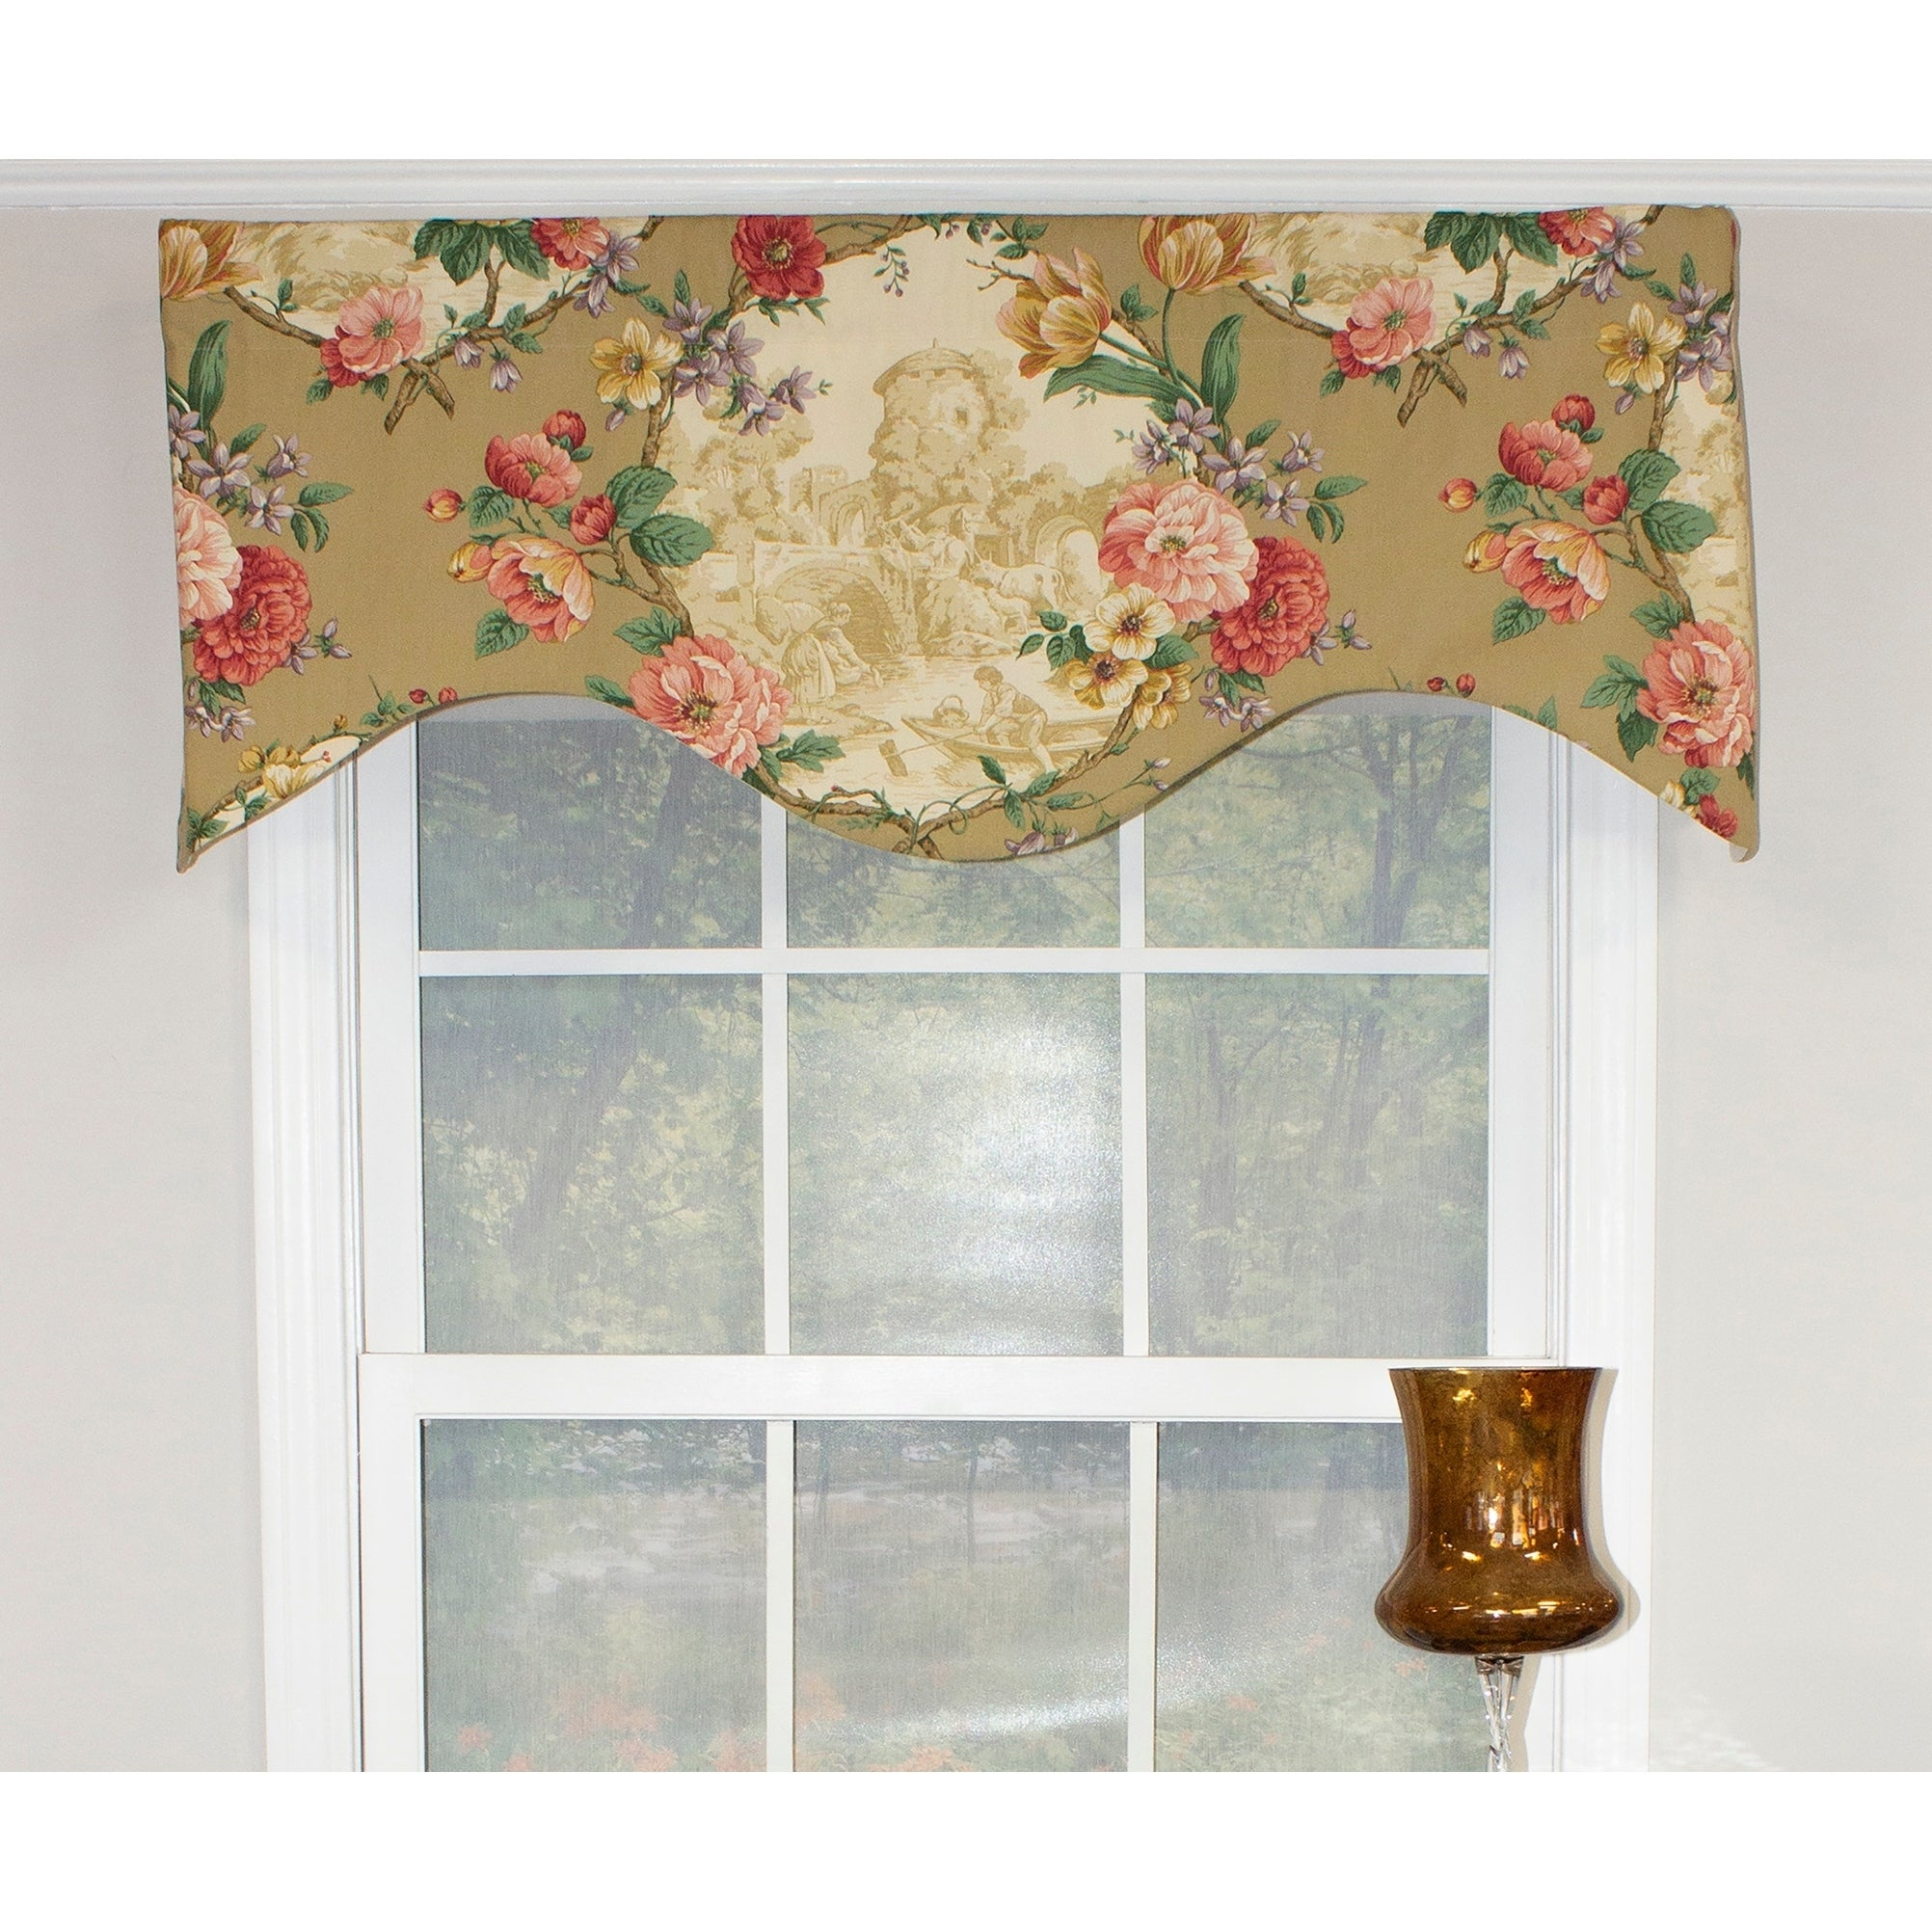 Rlf Home Antique Toile 50 Window Valance Overstock 22698053